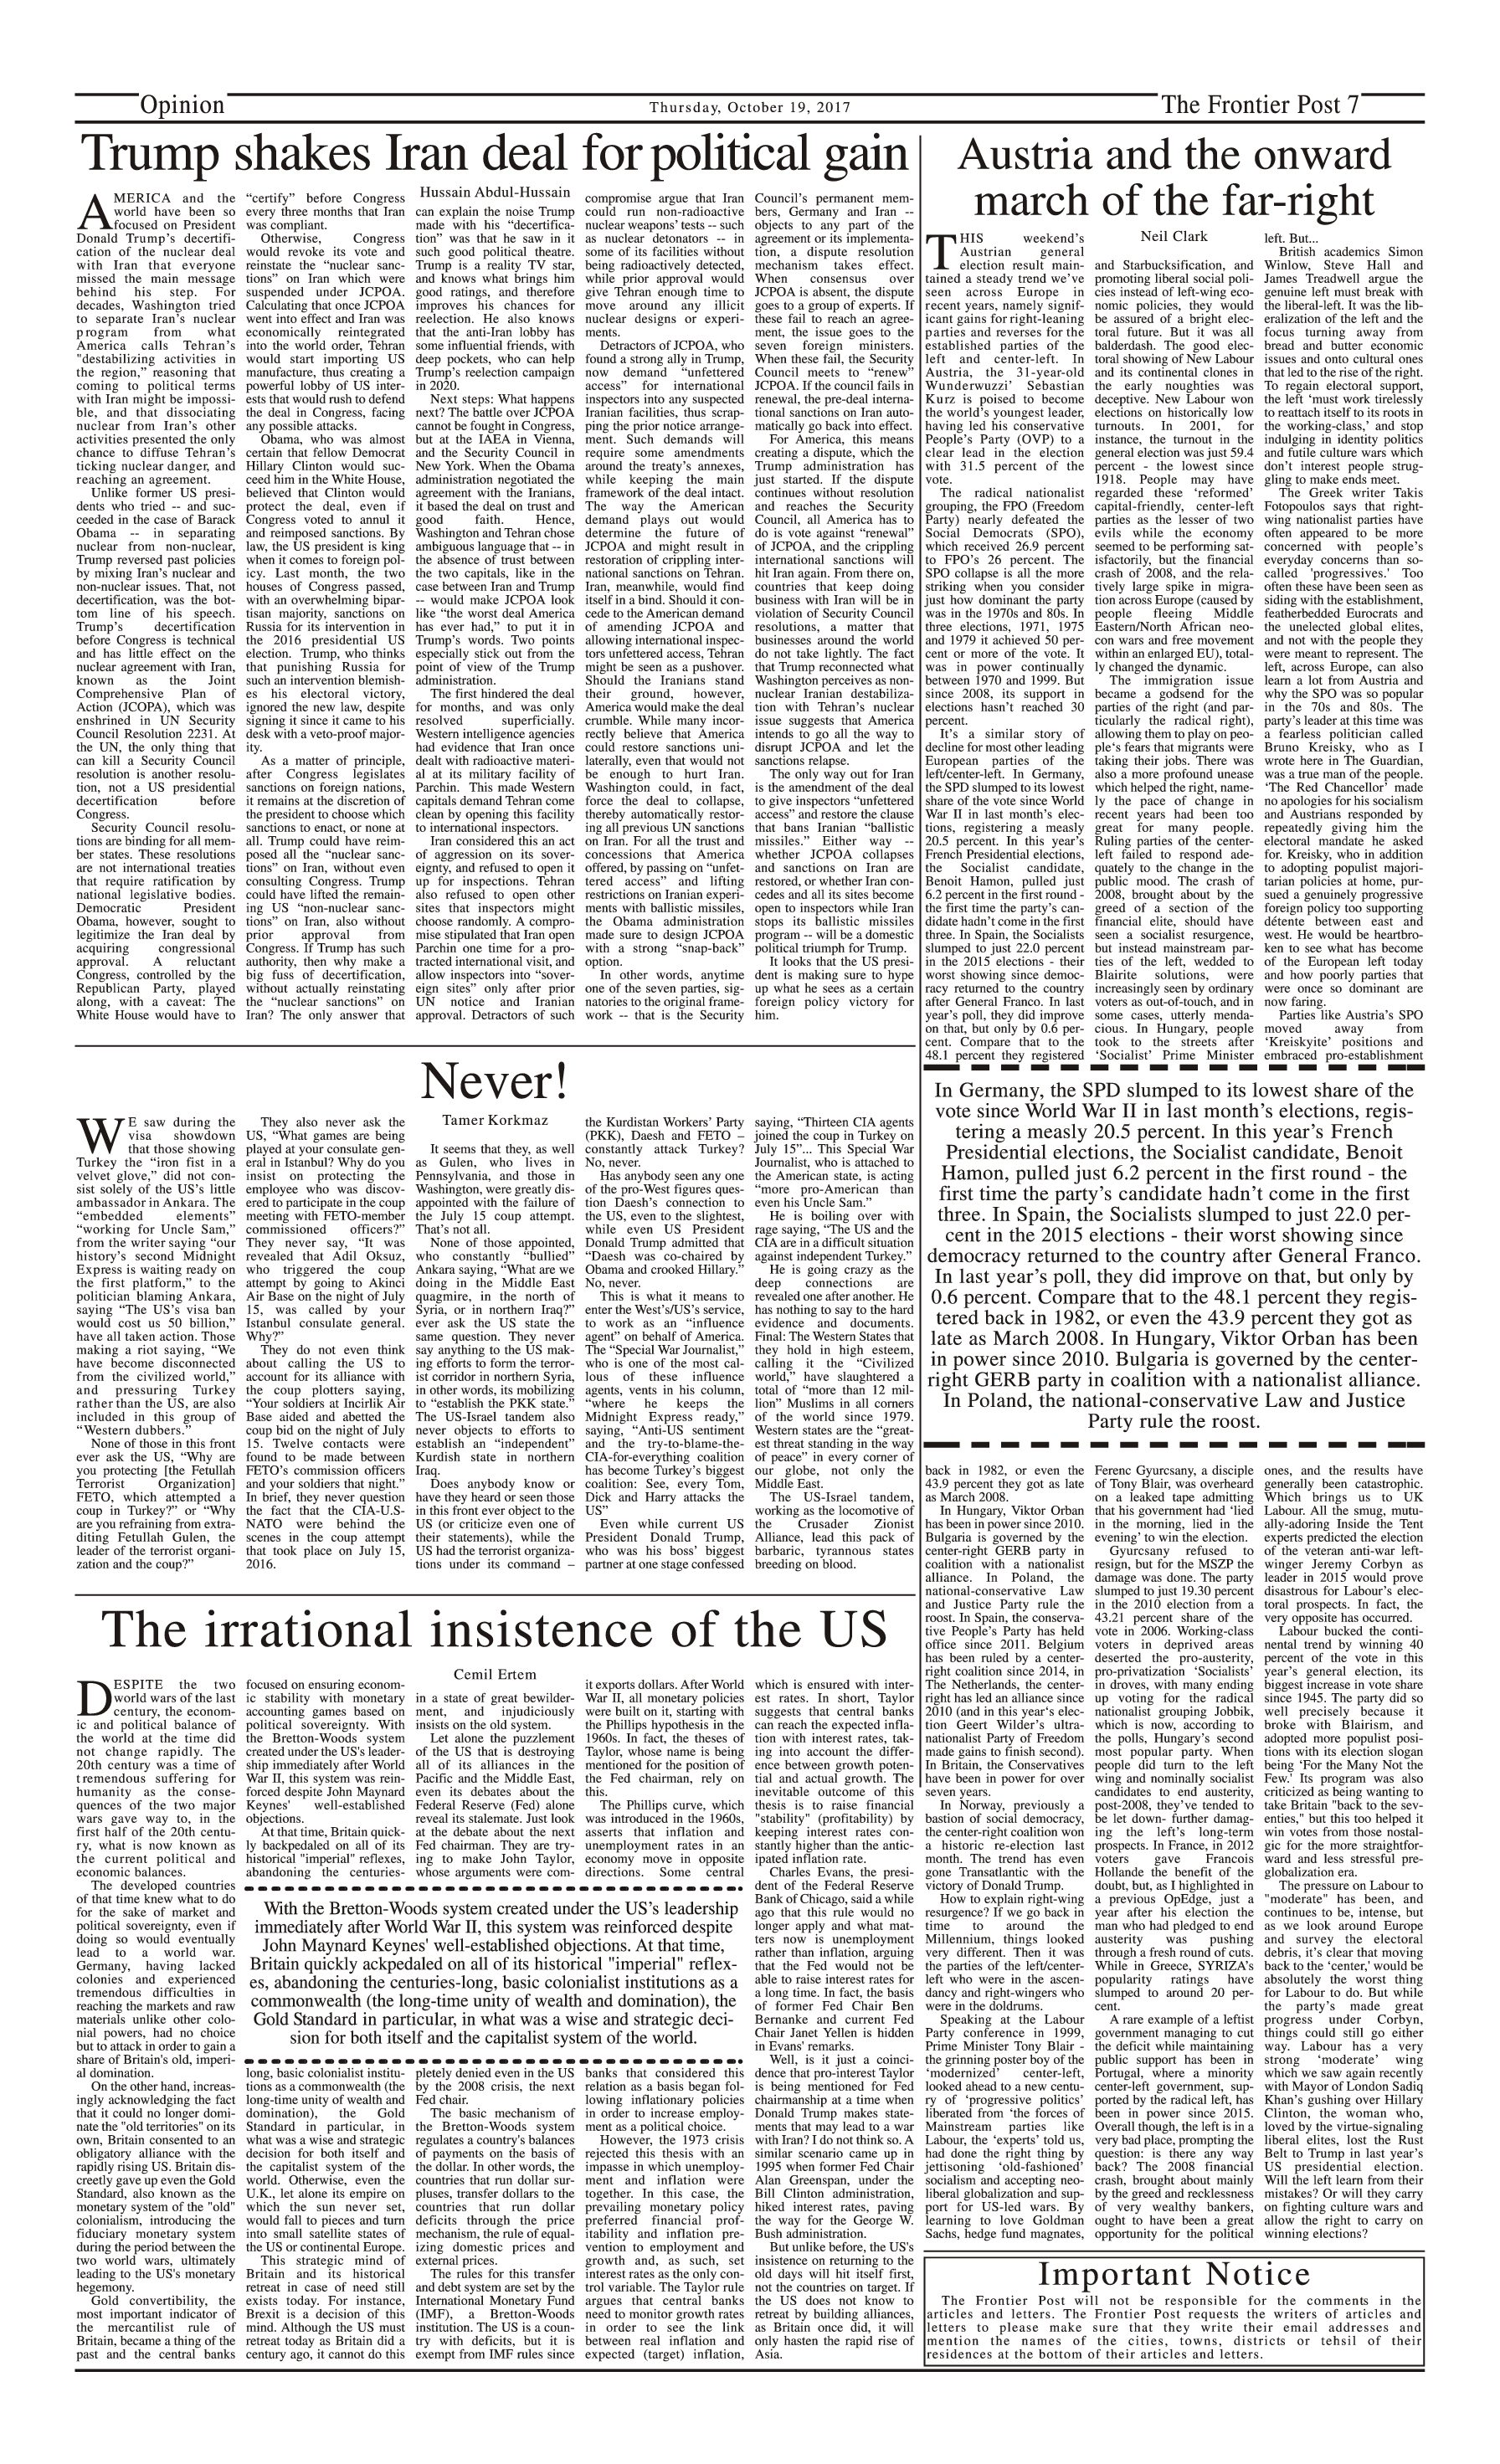 Opinion Page 19-10